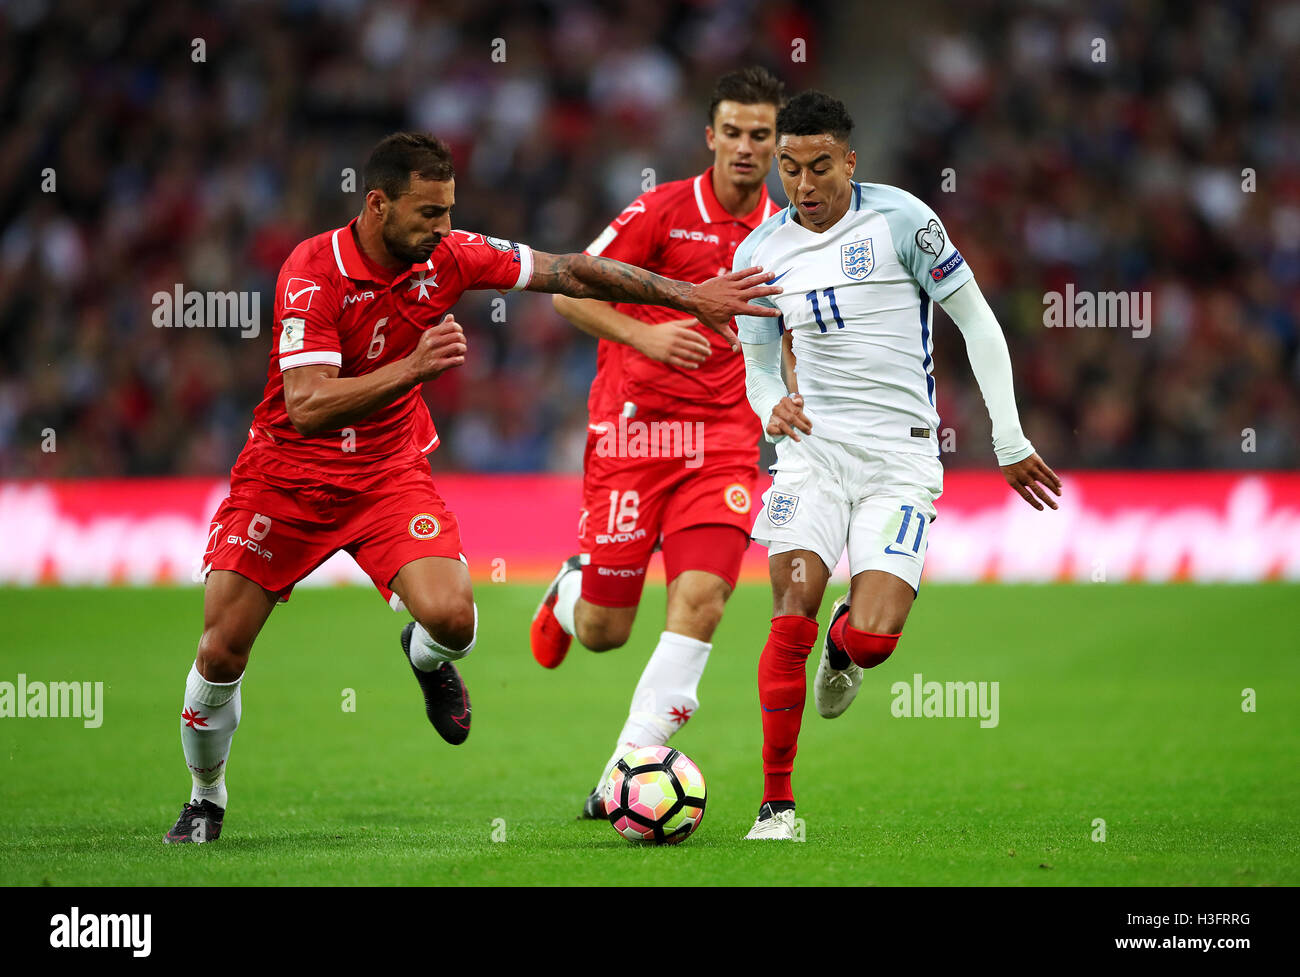 England s Jesse Lingard (right) in action with Malta s Steve Borg (left)  during the 2018 FIFA World Cup Qualifying match at Wembley Stadium 2a3bd6265